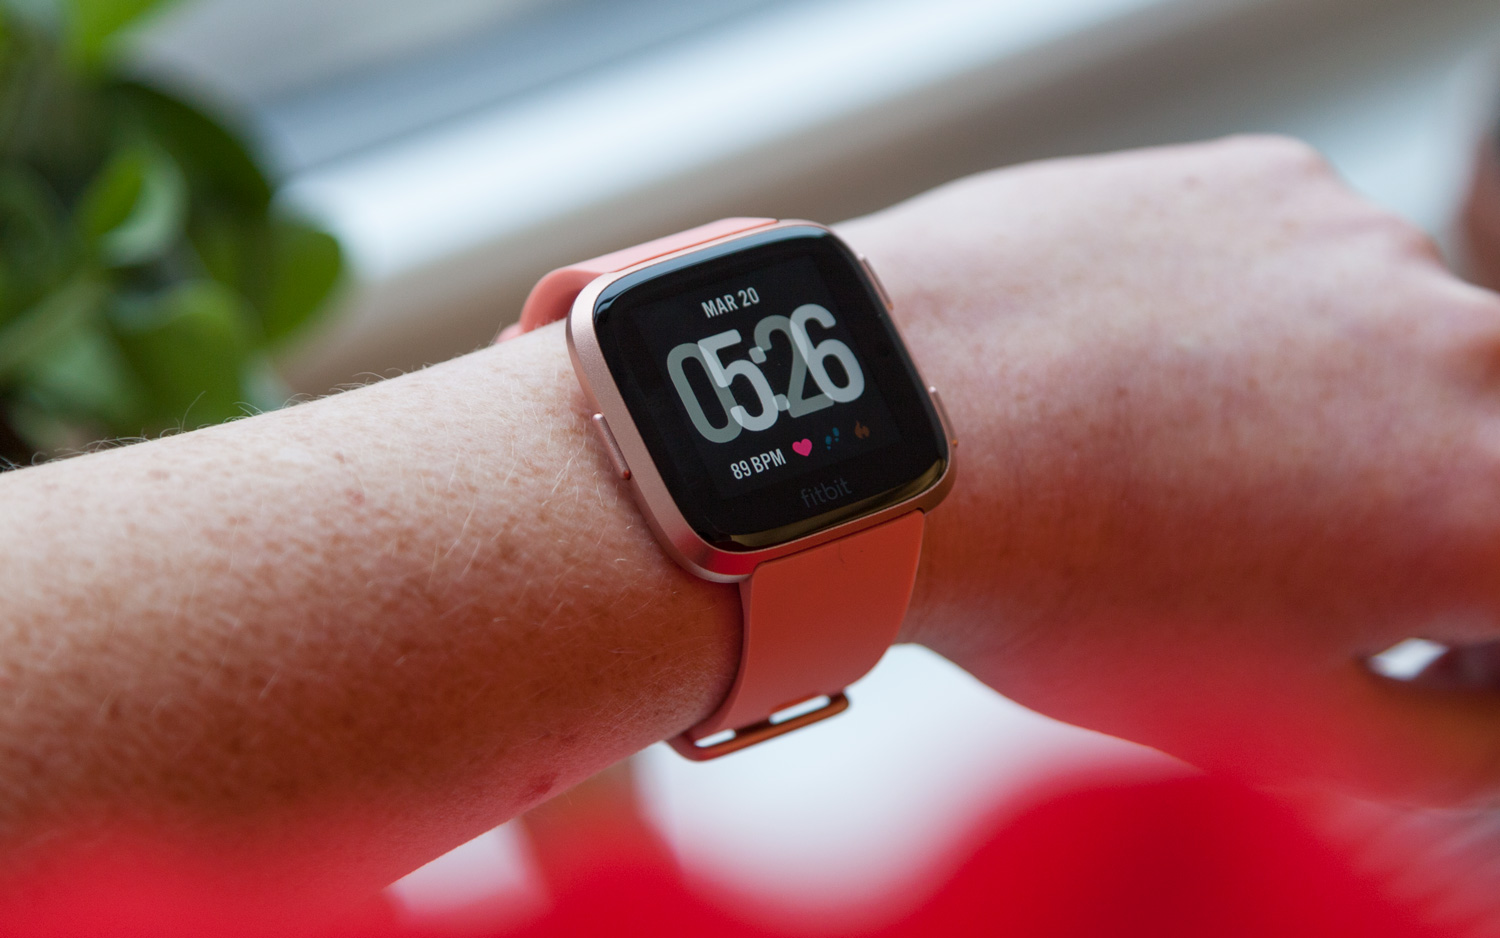 Fitbit Versa Review Roundup: What Critics Love (and Hate